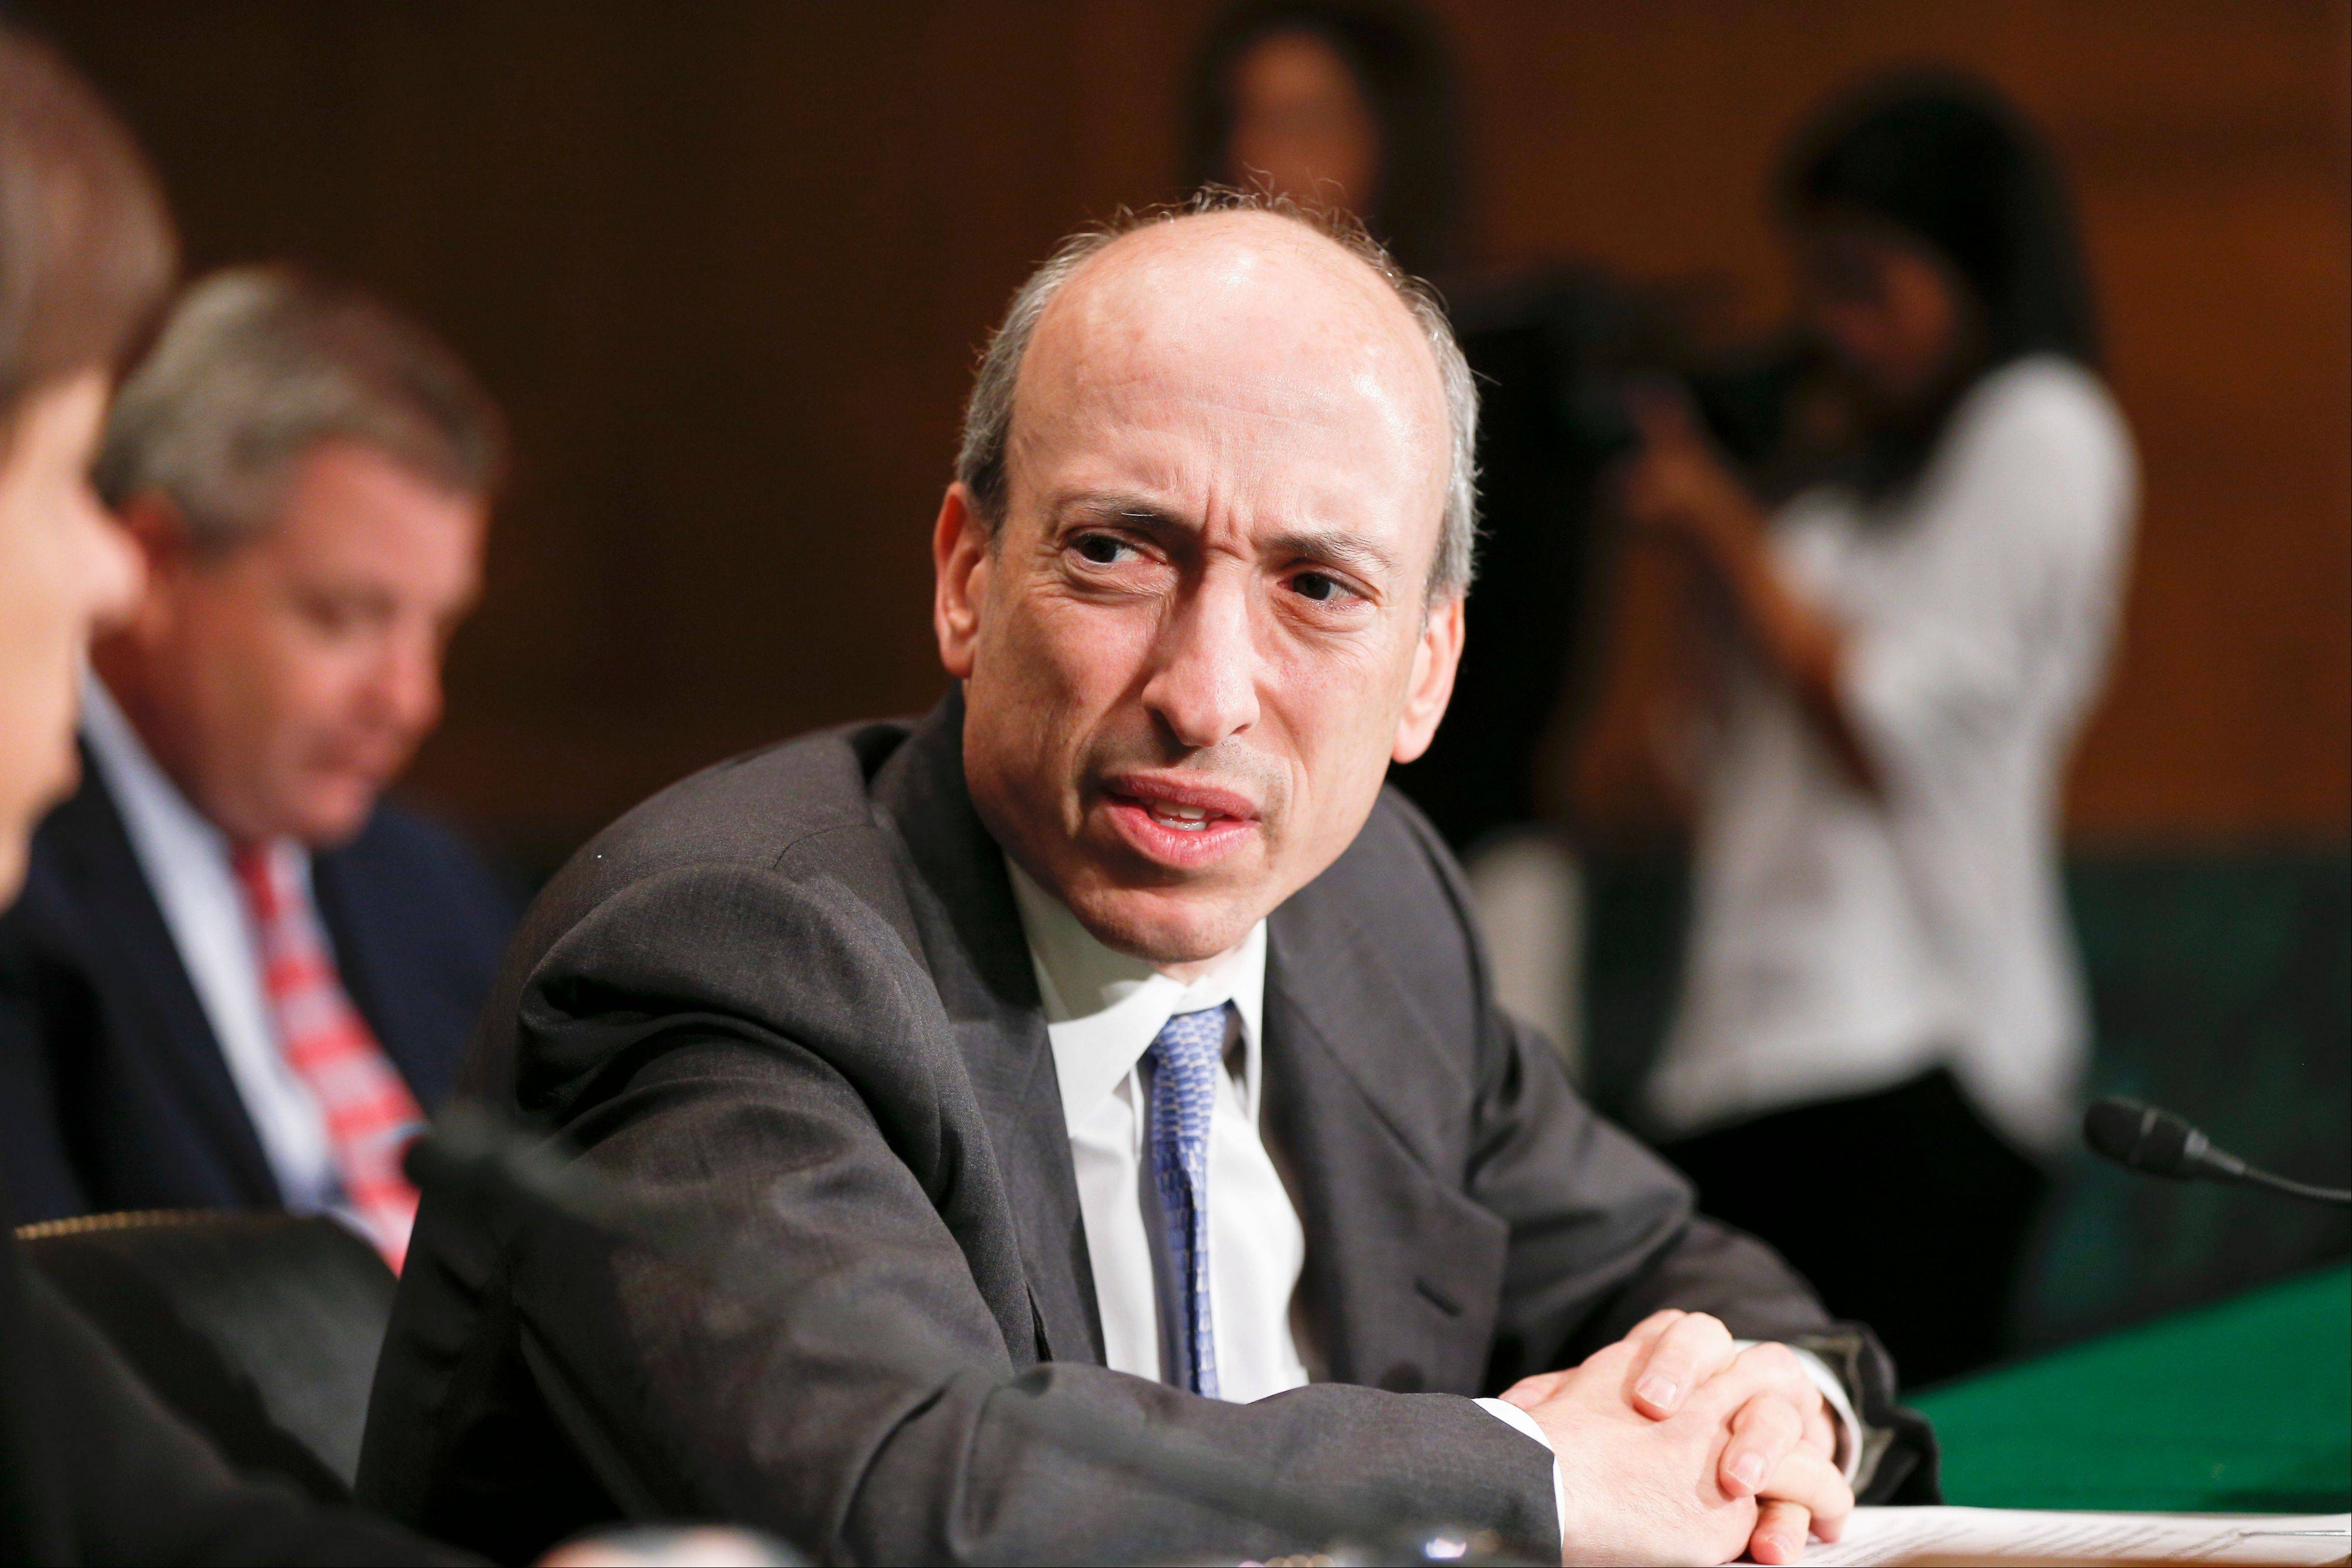 Commodity Futures Trading Commission Chairman Gary Gensler testifies on Capitol Hill in Washington Tuesday before the Senate Banking Committee, as lawmakers examine how to mitigate systemic risk in financial markets through Wall Street reforms.